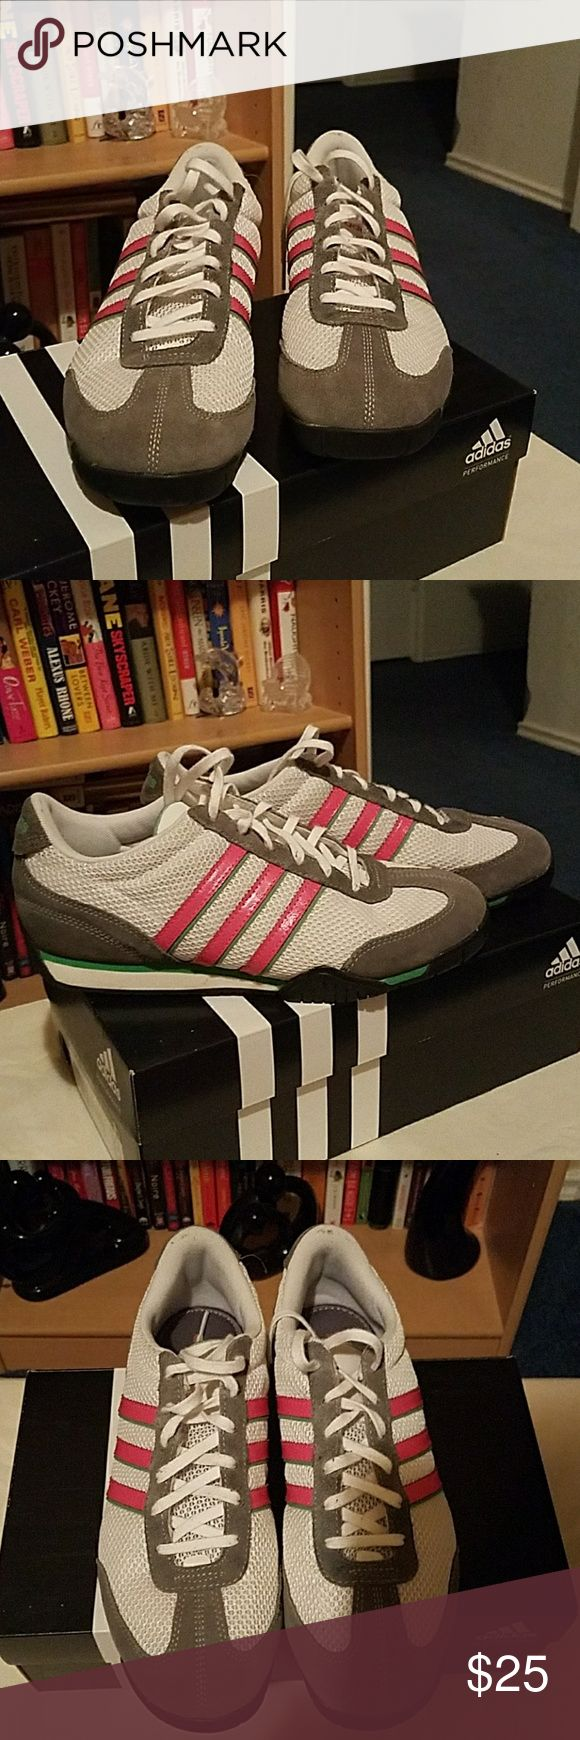 Women's Adidas Size 9 Tennis Shoes Women's Adidas Tennis Shoes.  Size 9. Colors include white, gray, pink and green trim. Slight ding on right shoe (see pic #6). Otherwise in great condition. Adidas Shoes Athletic Shoes